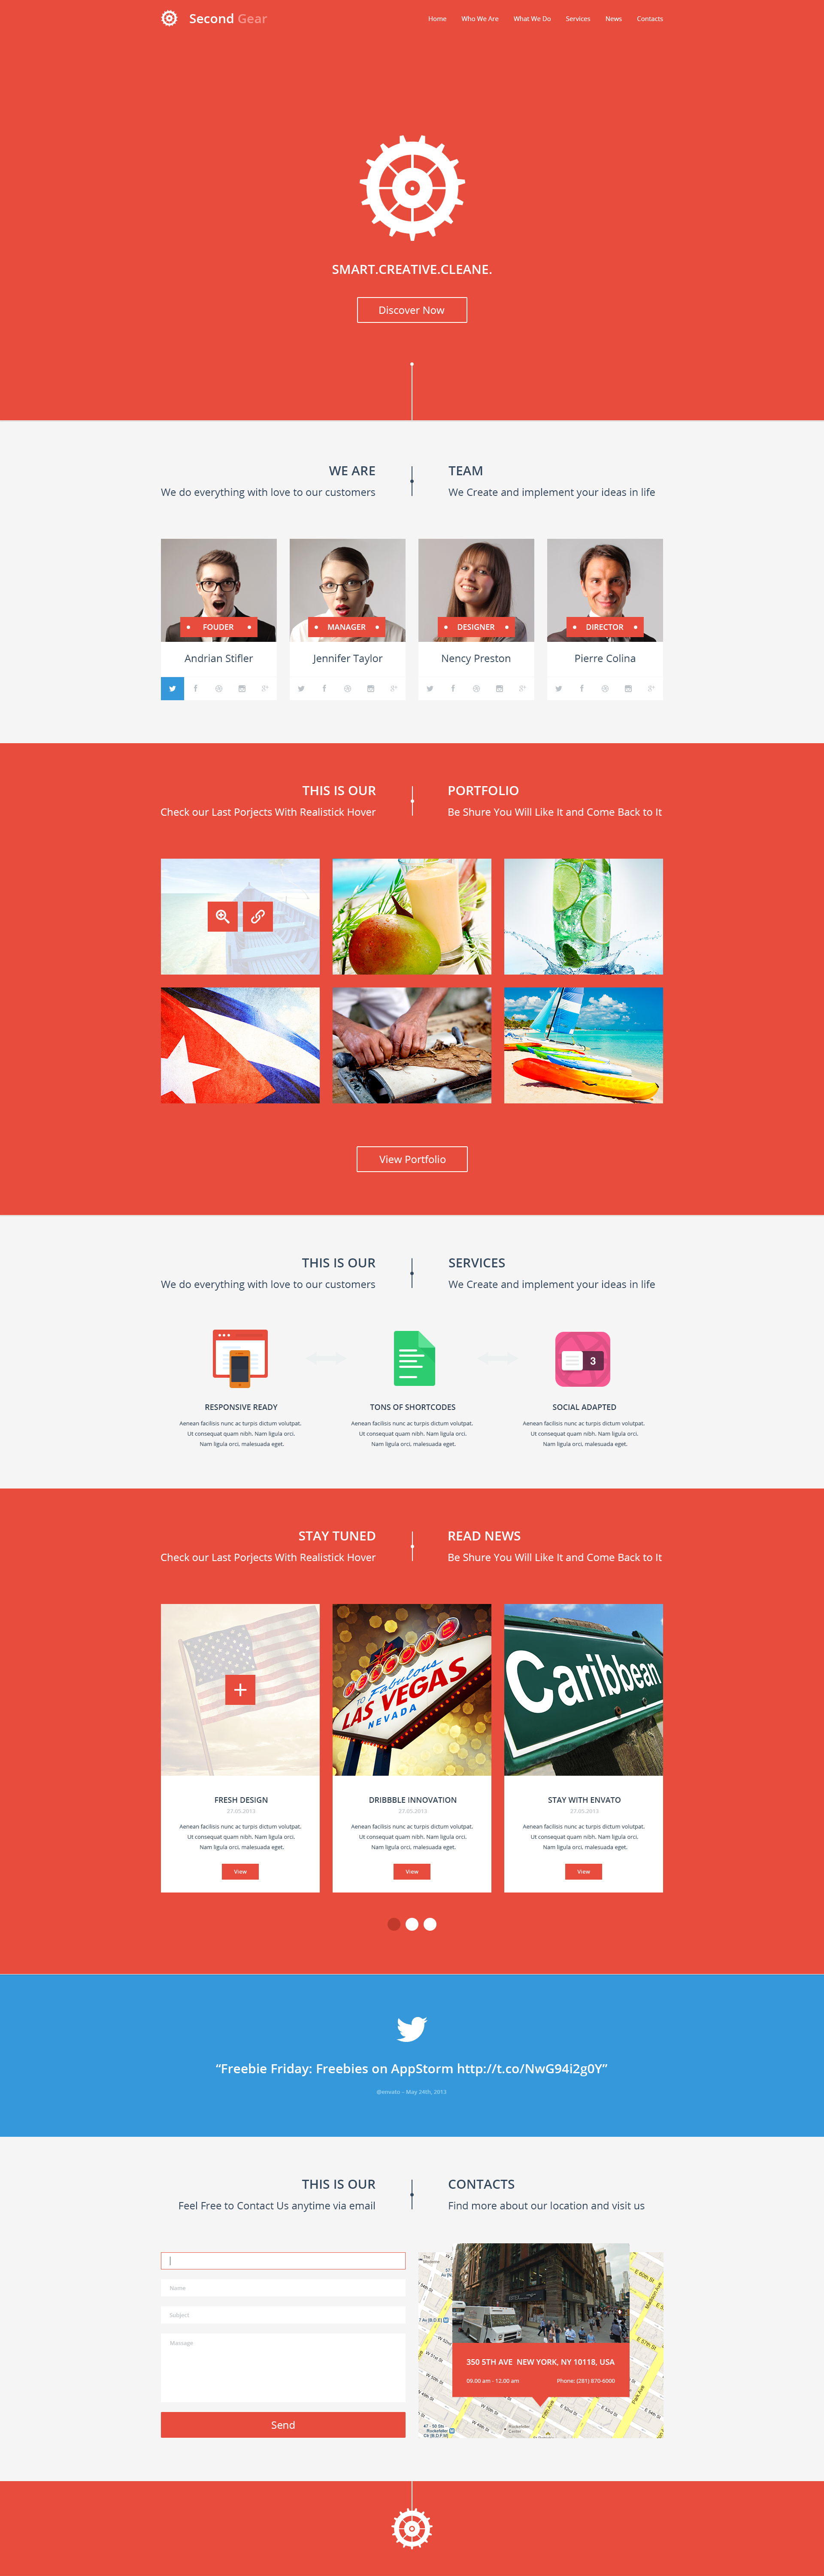 Second Gear - One Page Portfolio PSD Template - Screenshot 1